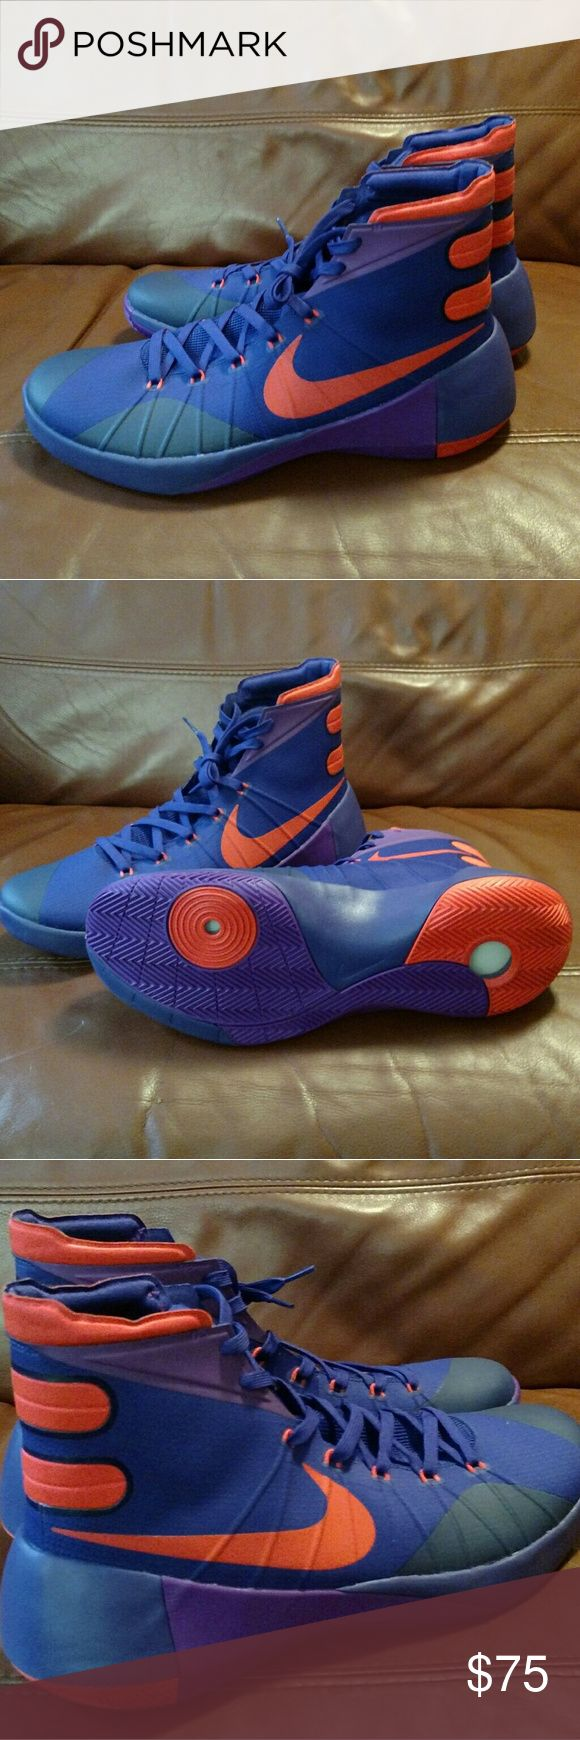 Nike Hyperdunk 2015 Size 14 Brand new UNWORN pair of Men's Nike Hyperdunk 2015 basketball sneakers with the rare Purple/Orange/Navy colorway in size 14 Nike Shoes Sneakers